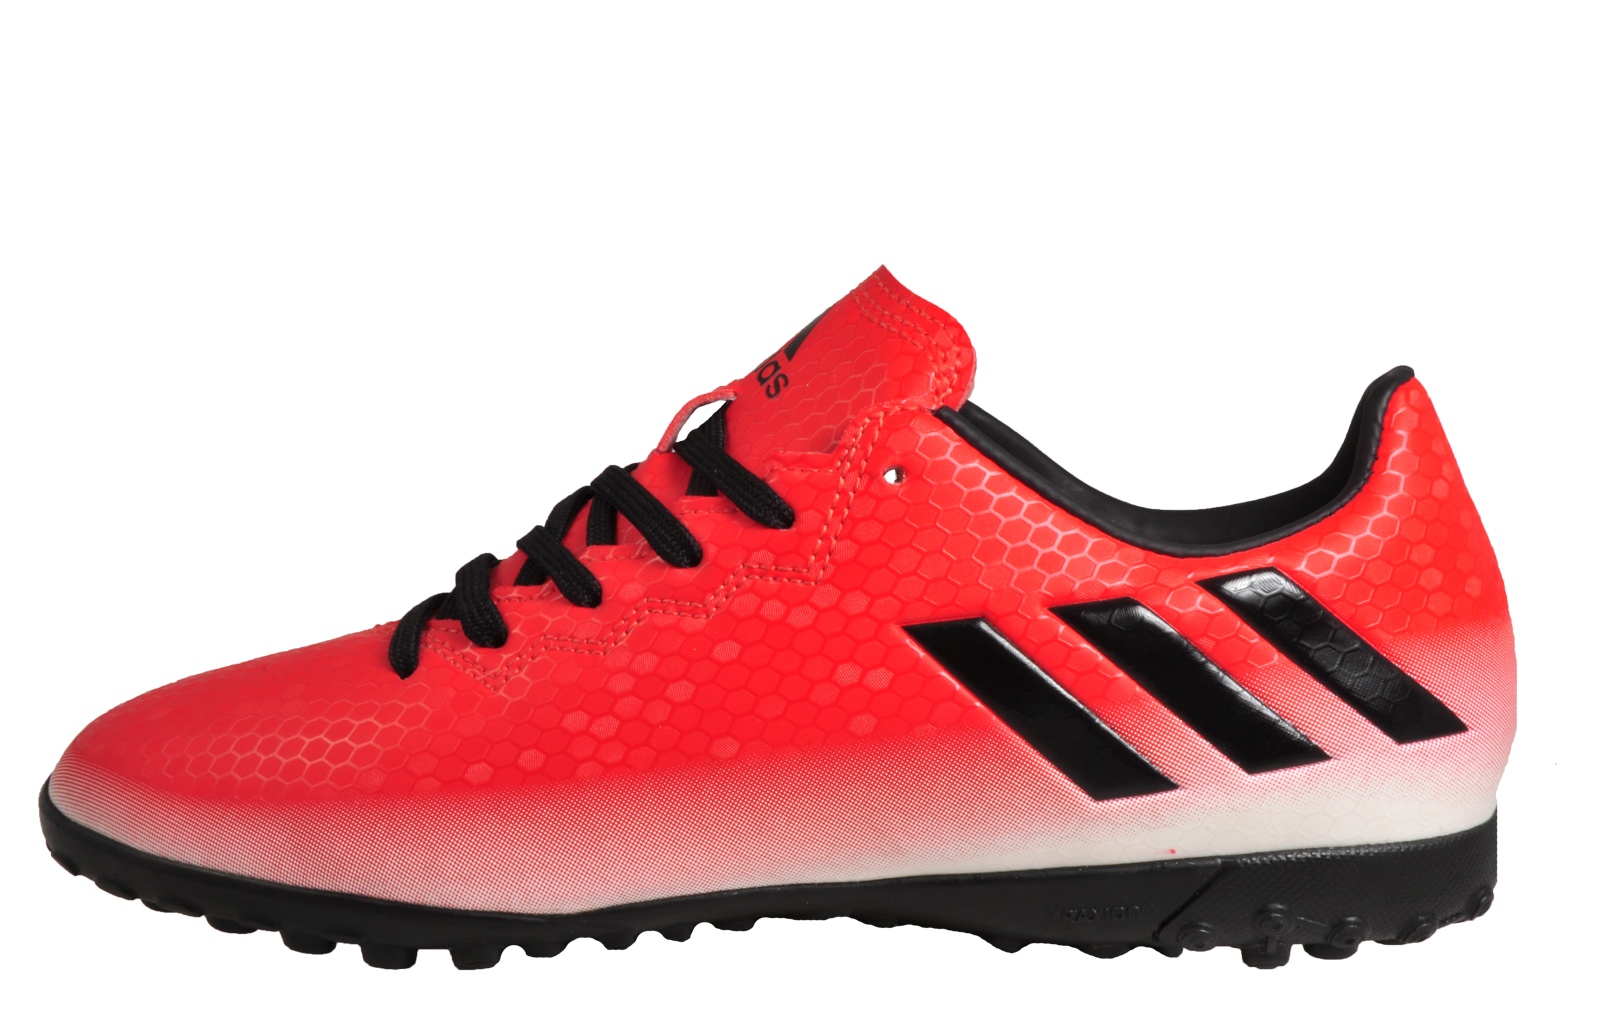 sale retailer 37999 62610 Adidas Messi 16.4 TF Mens Football Astro Turf Indoor Trainers Red